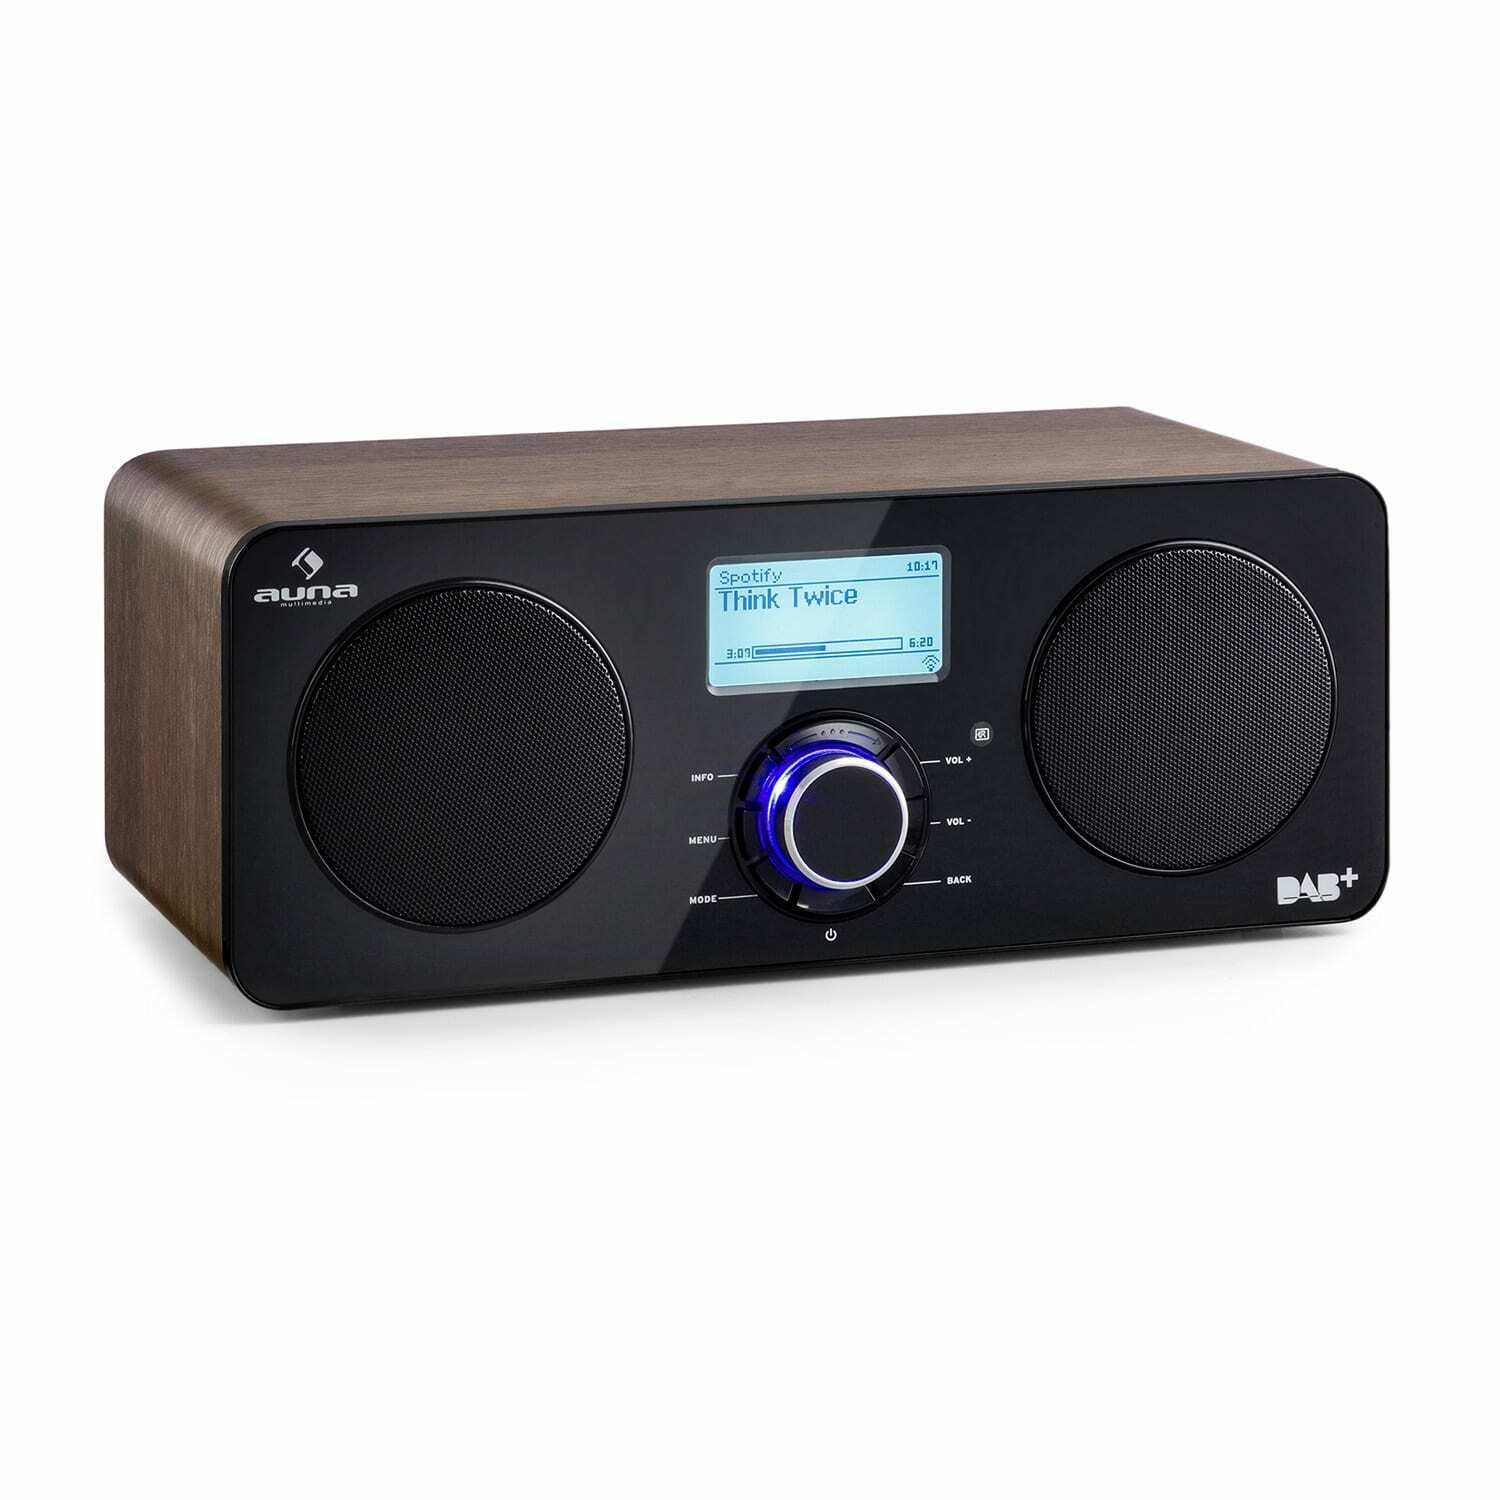 internetradio dab digitalradio wecker holz retro vintage spotify connect wlan eur 109 99. Black Bedroom Furniture Sets. Home Design Ideas